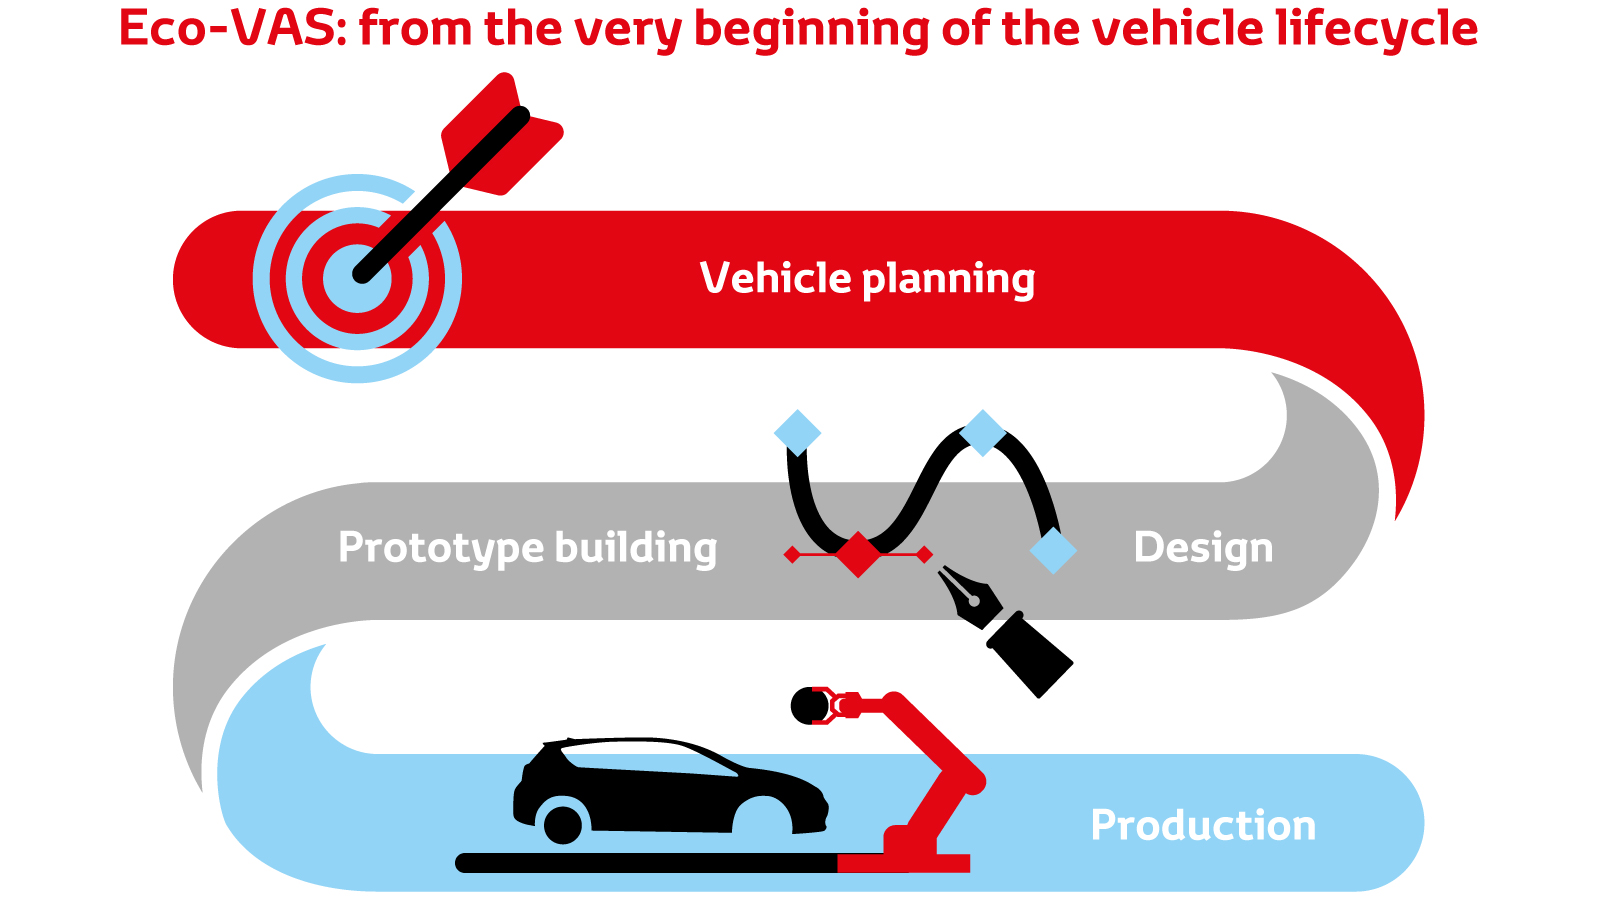 Toyota Reduce Raw 4 Engine Diagram For Things Such As Instrument Panels Trim Parts And Even Bumpers Our Work In This Area Has Also Helped Us Discover New Ways Of Putting Recycled